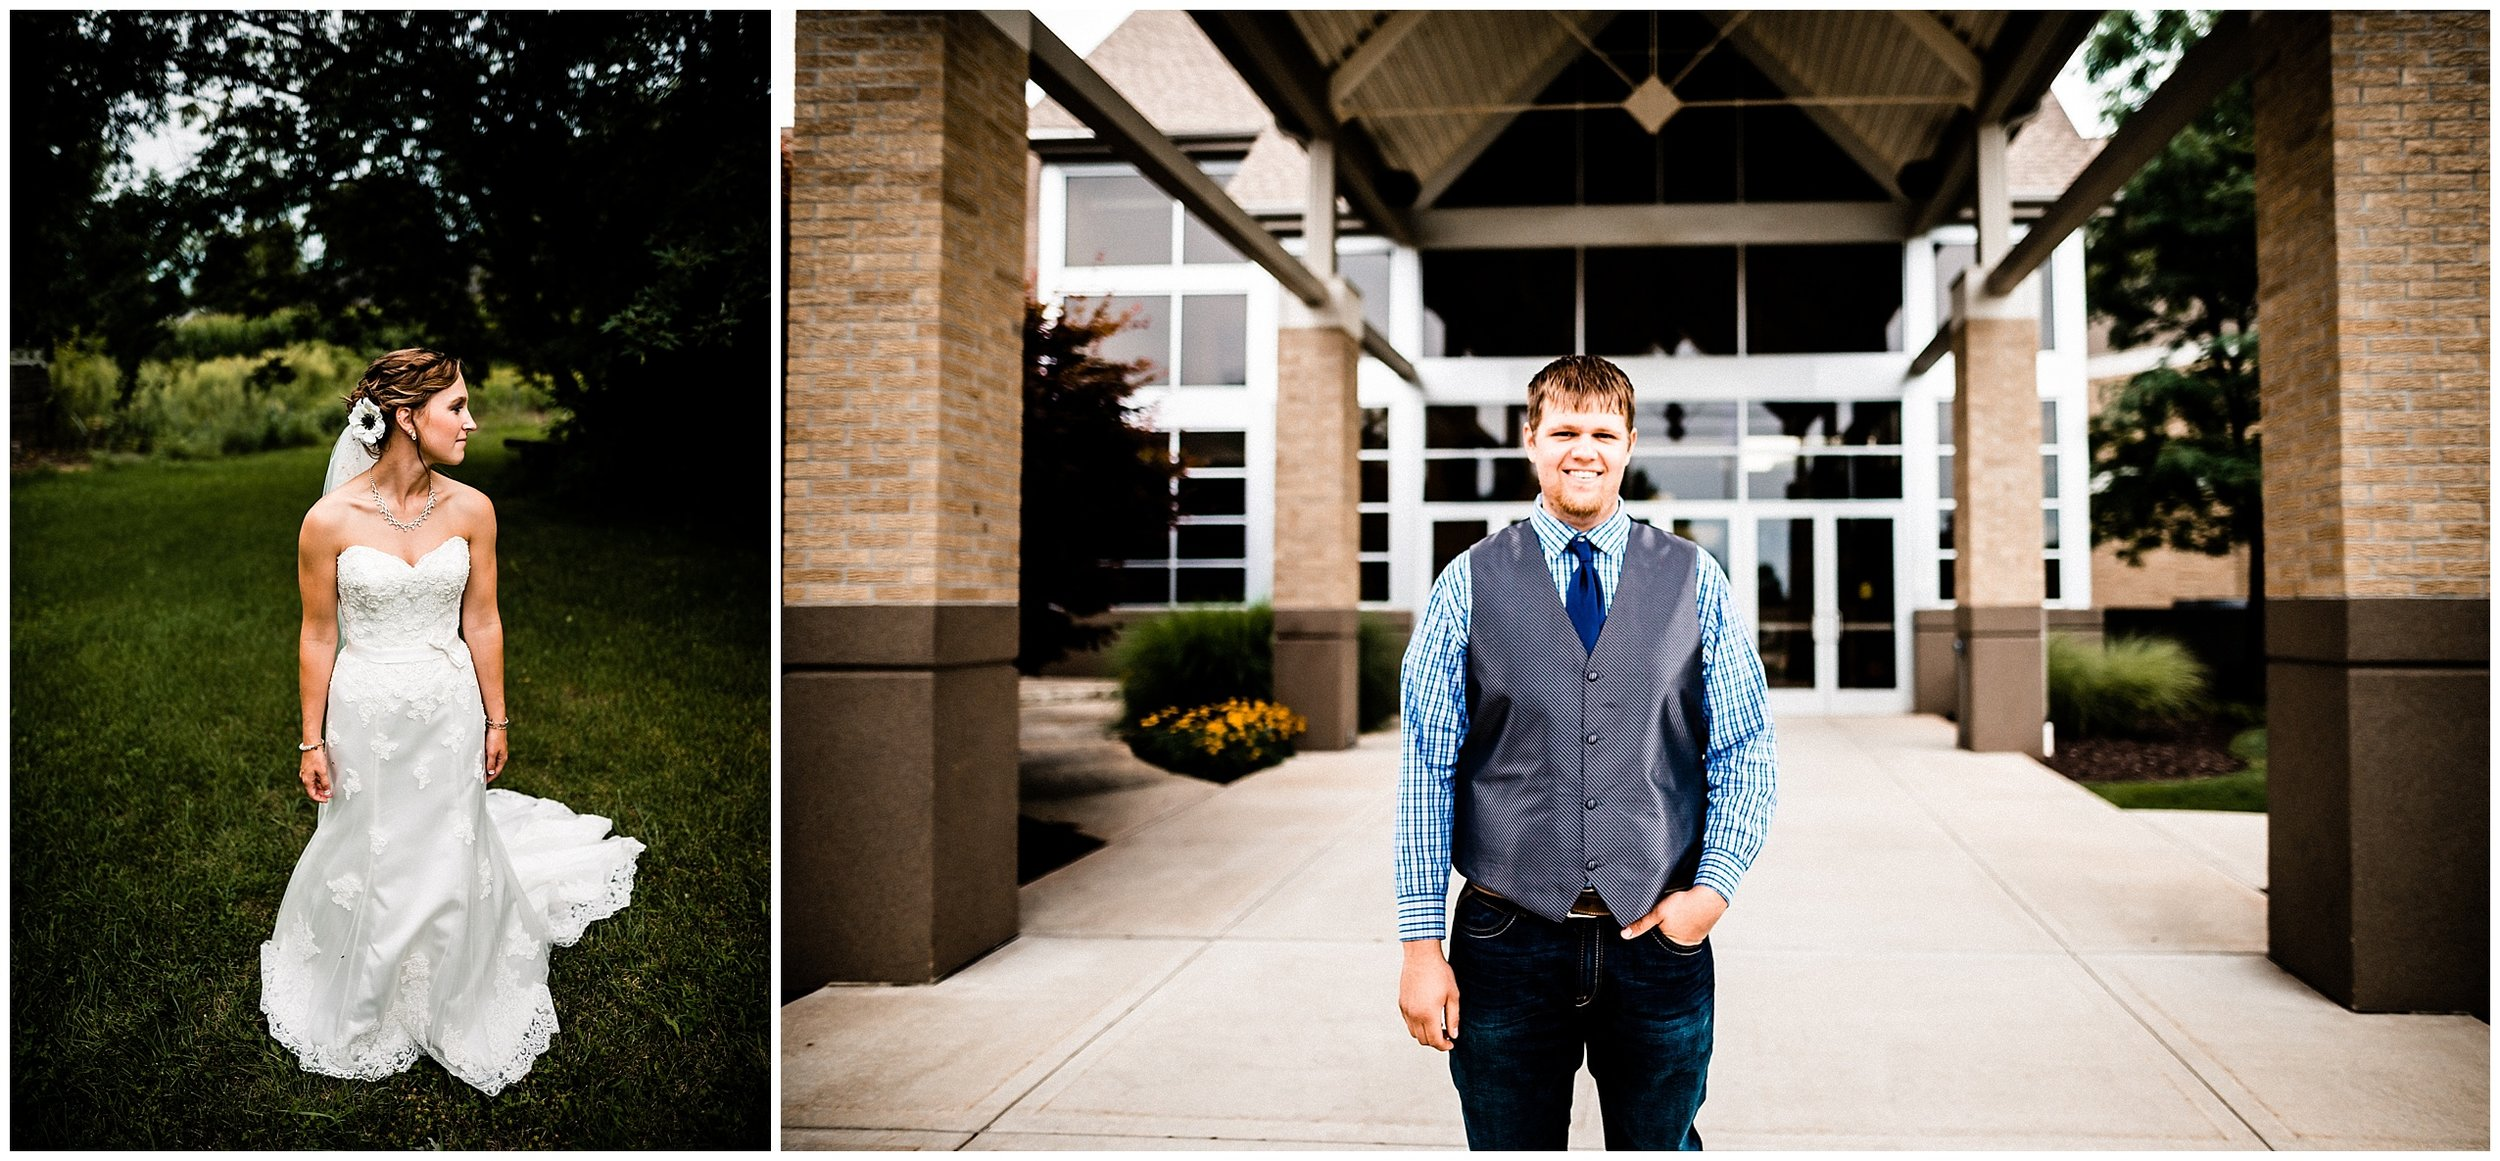 Ben + Rachel | Just Married #kyleepaigephotography_1094.jpg